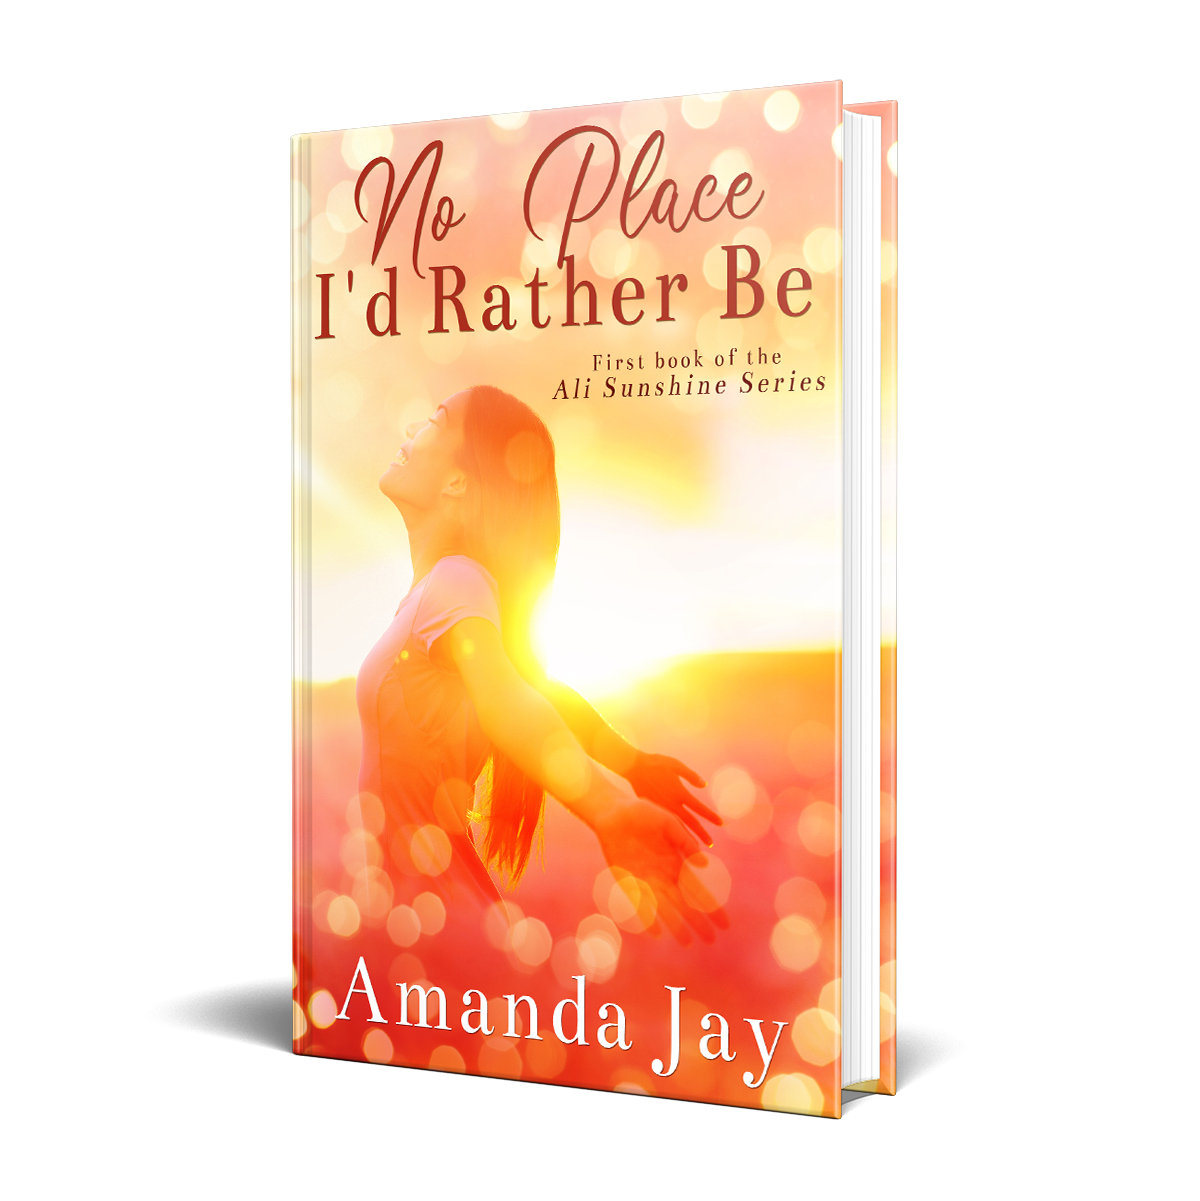 Fabulous spiritual/chick lit ebook cover for the 1st in a series of international bestsellers.